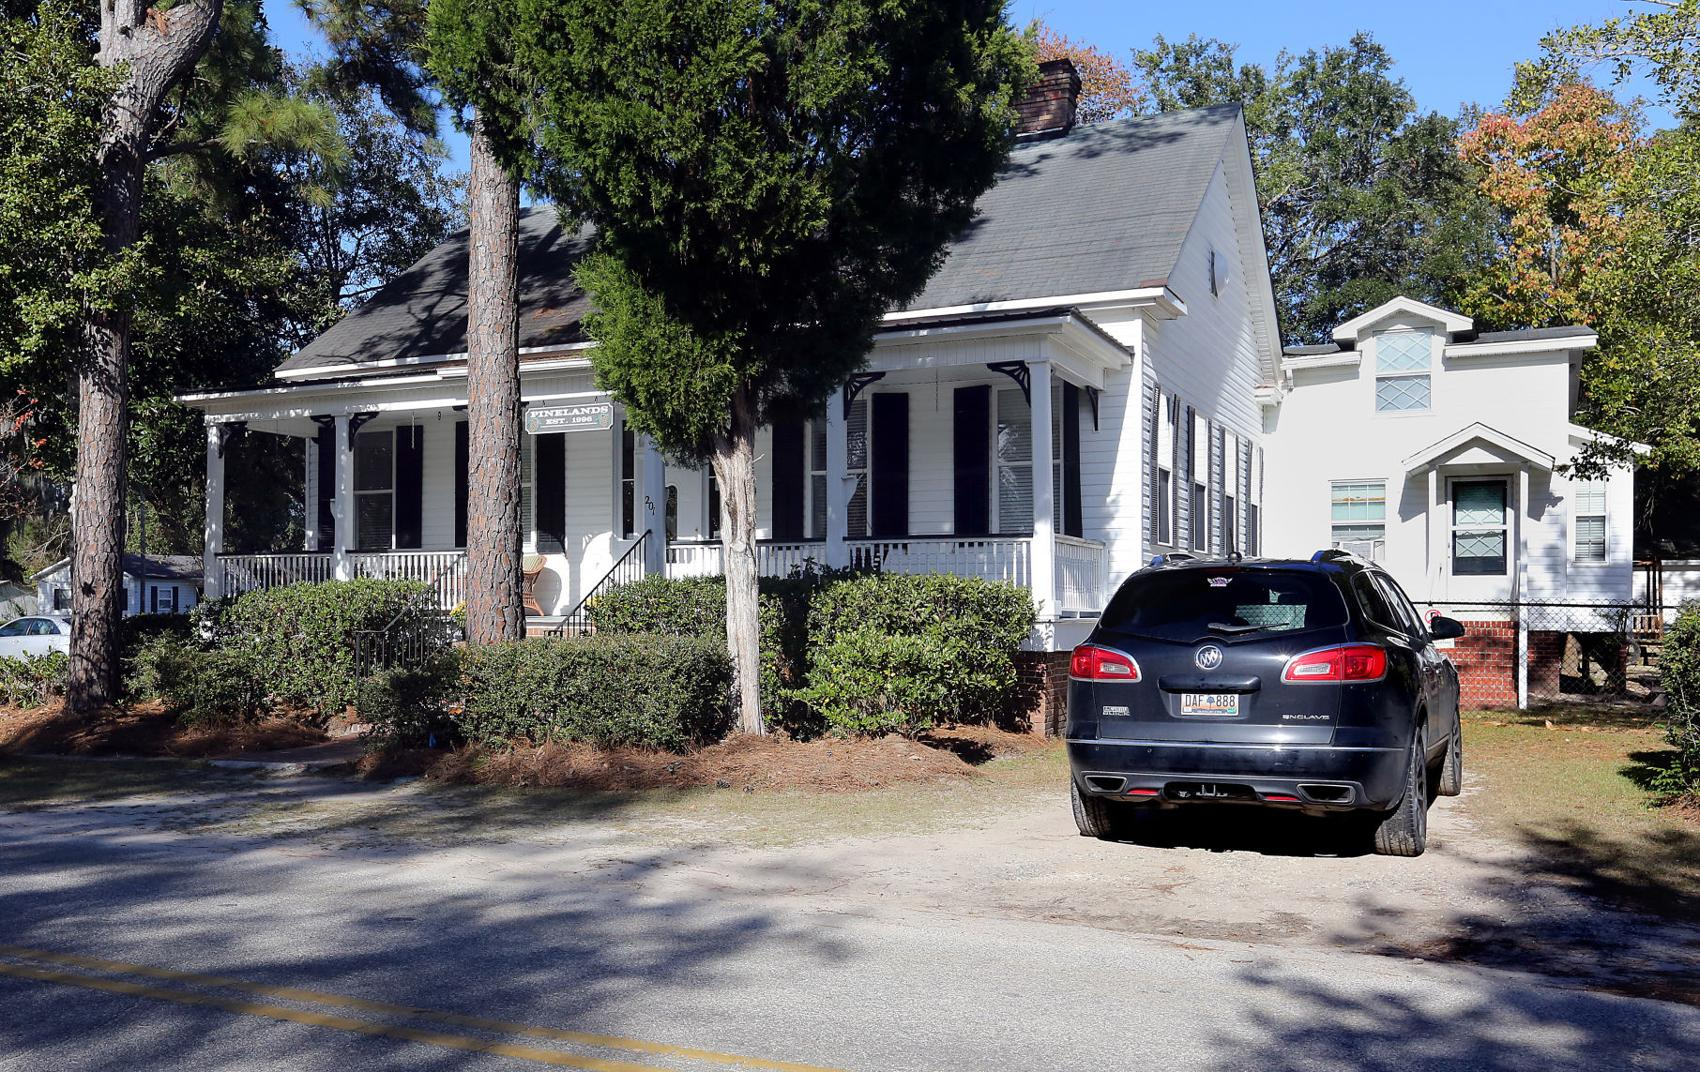 South Carolina: children punished in 'tight, dark' rooms in group home